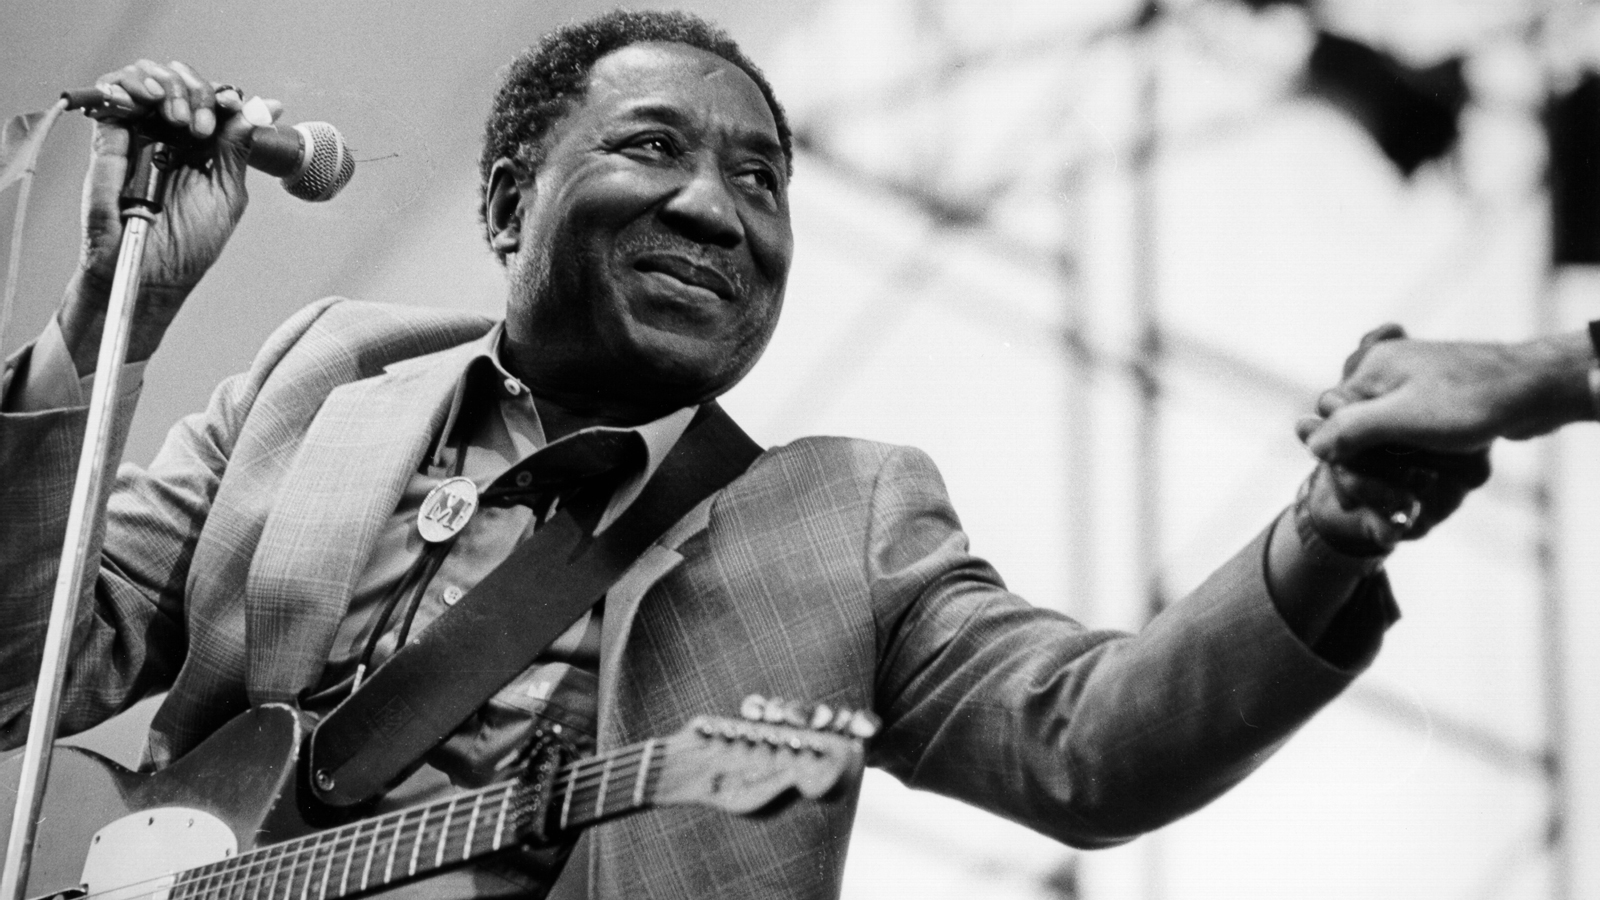 Muddy the waters